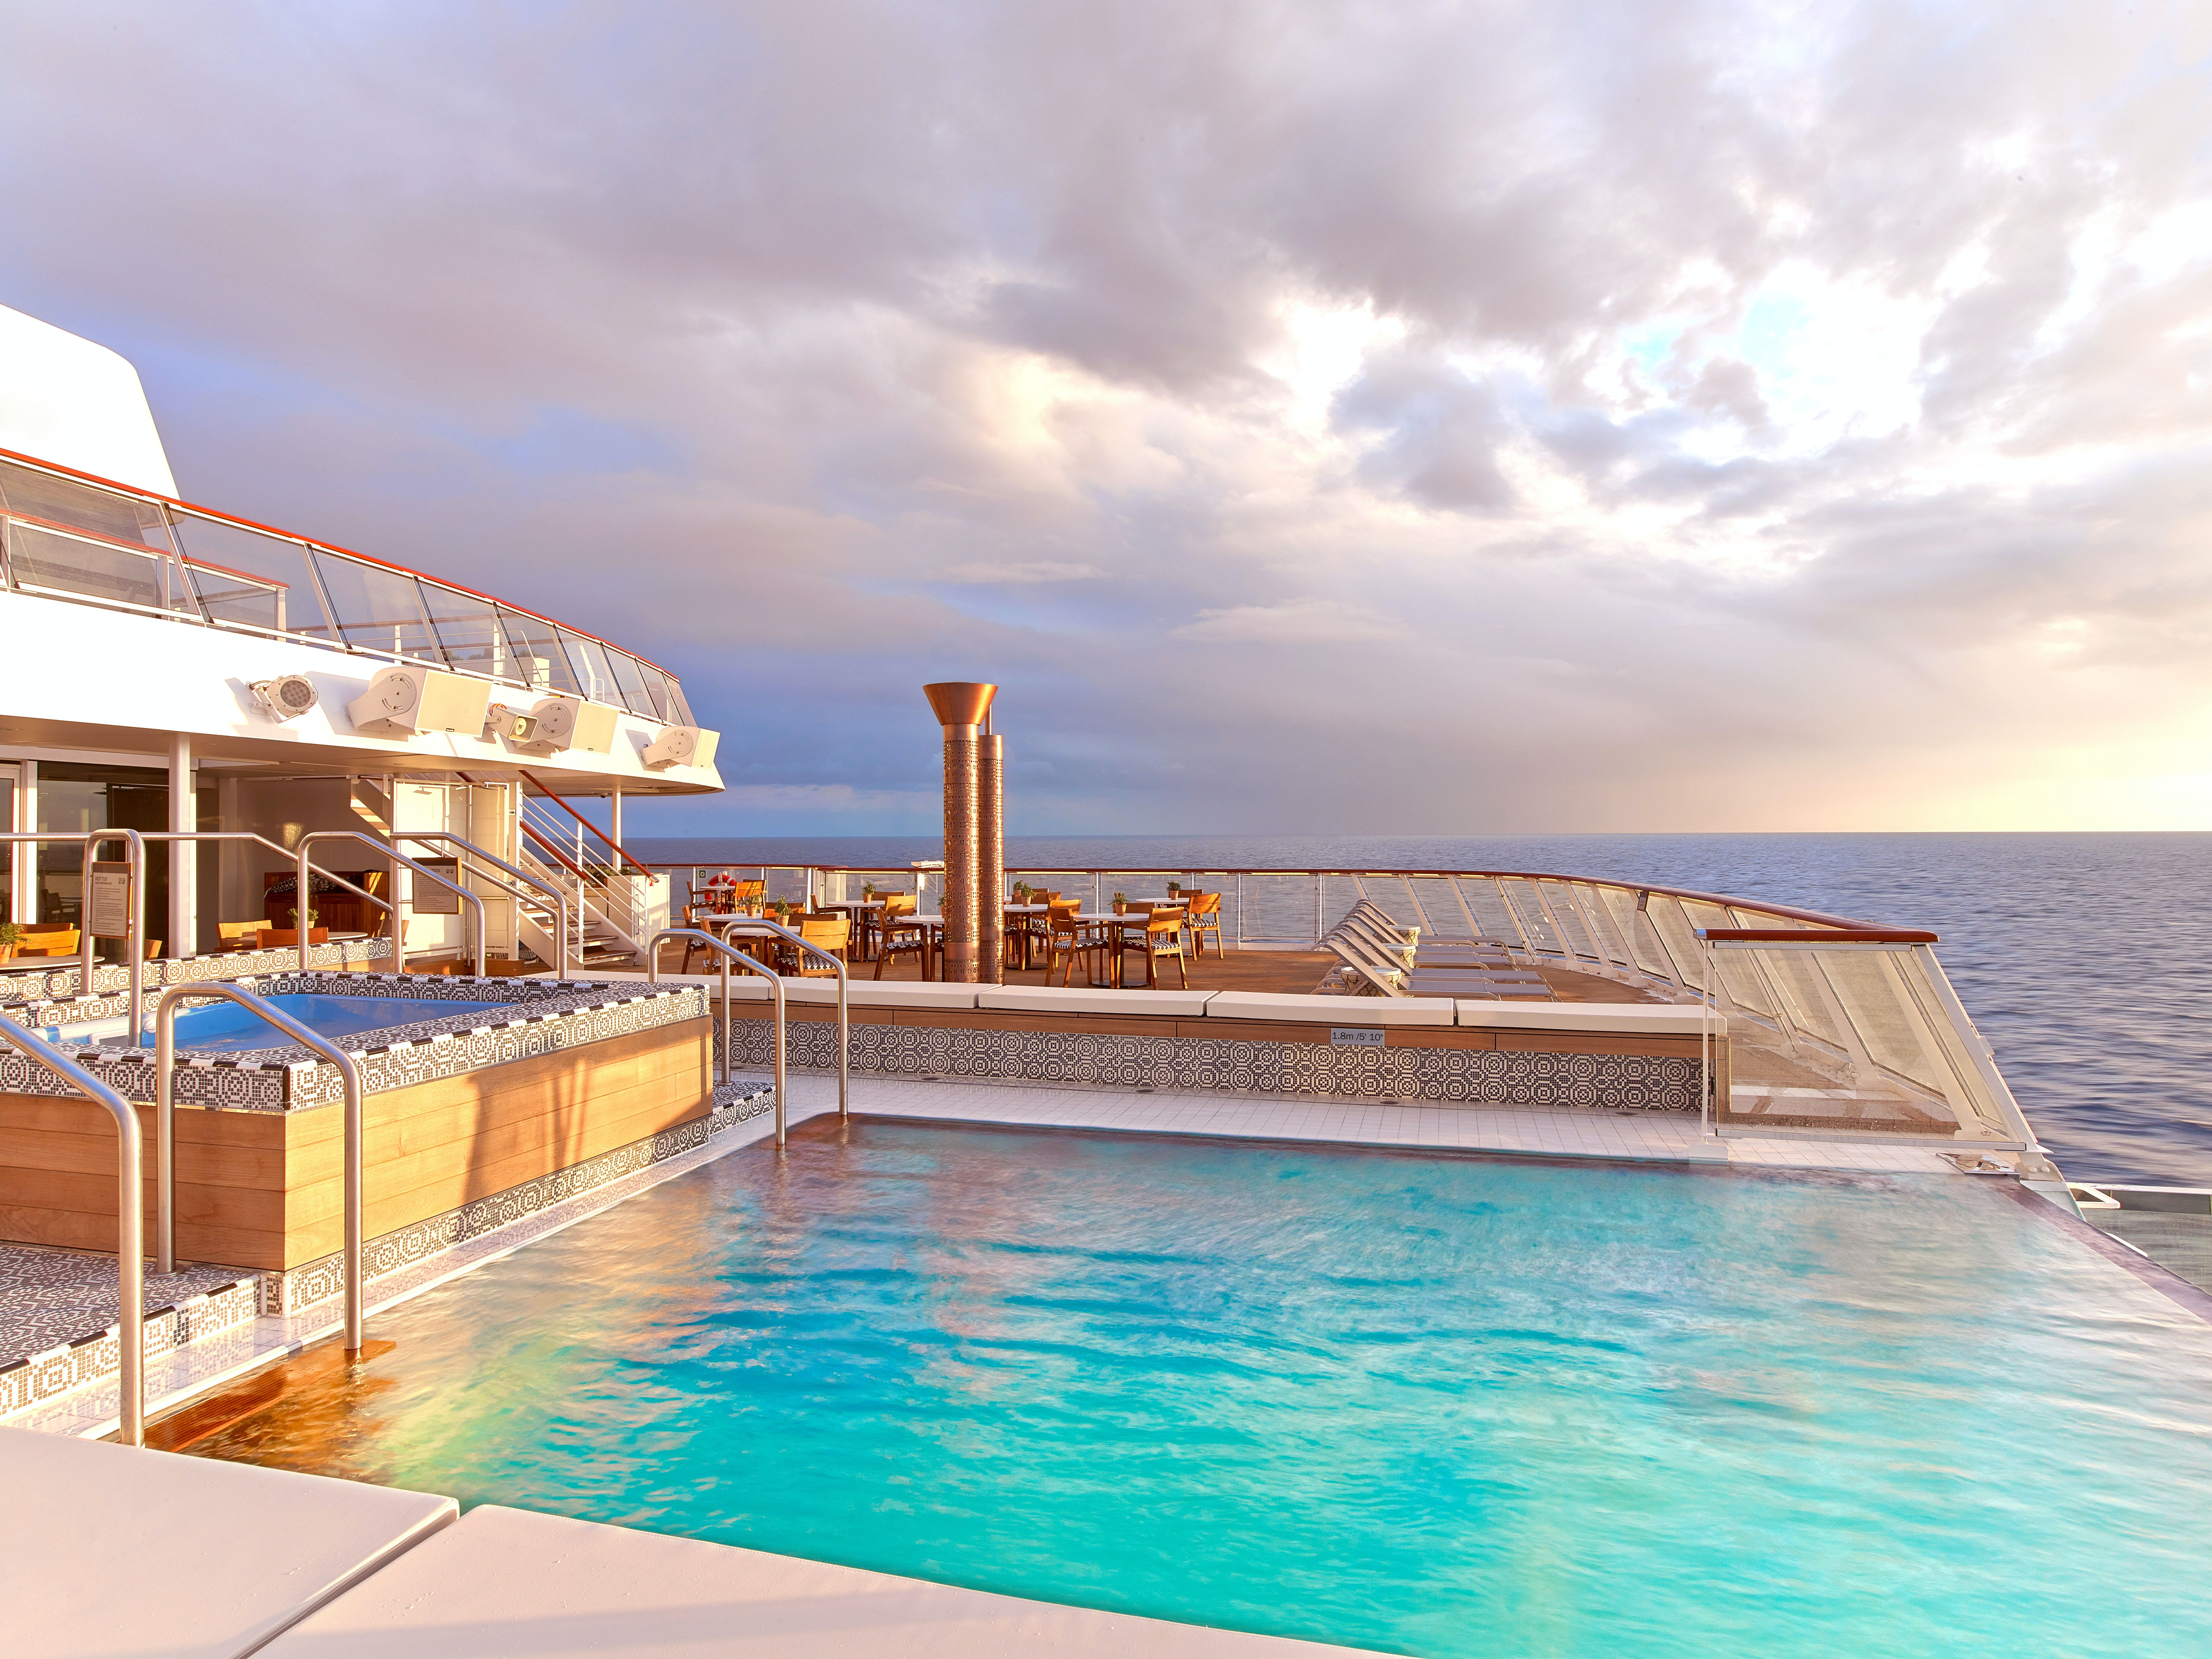 The sleek negative edge pool at the rear of every ocean ship boasts some of the best views on board.